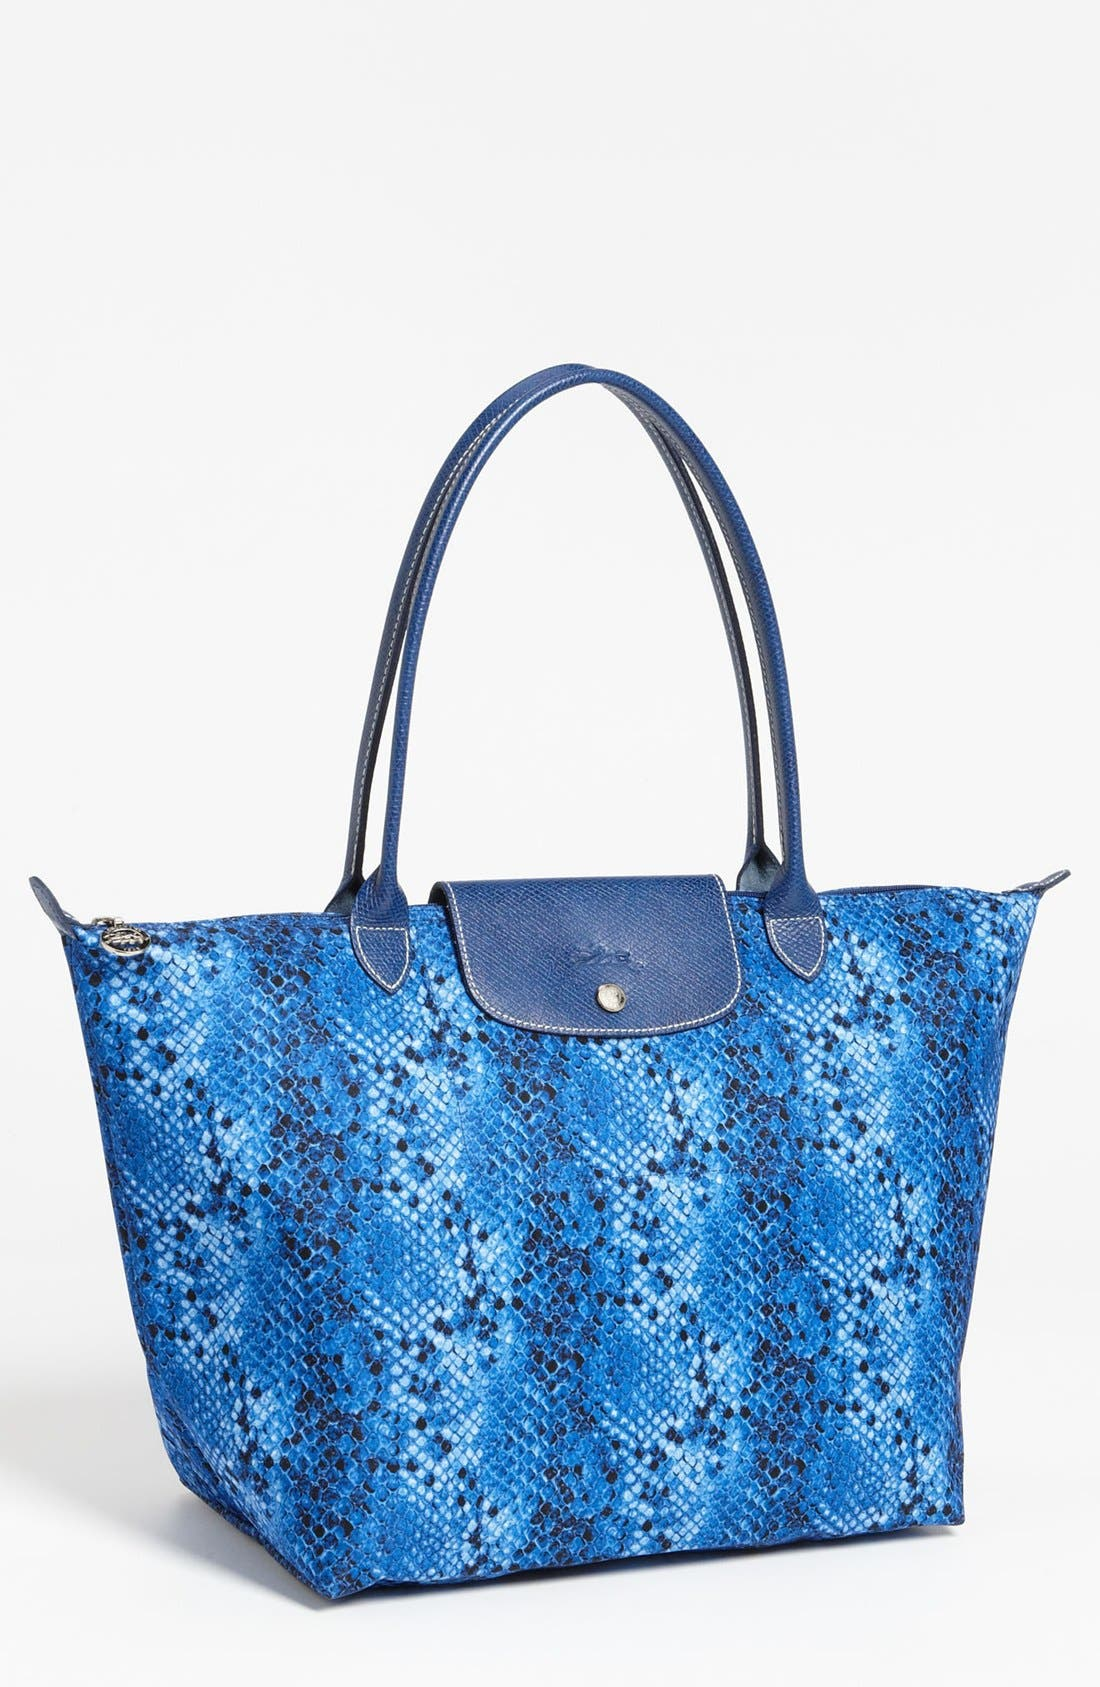 Alternate Image 1 Selected - Longchamp 'Le Pliage - Large' Python Print Shoulder Tote